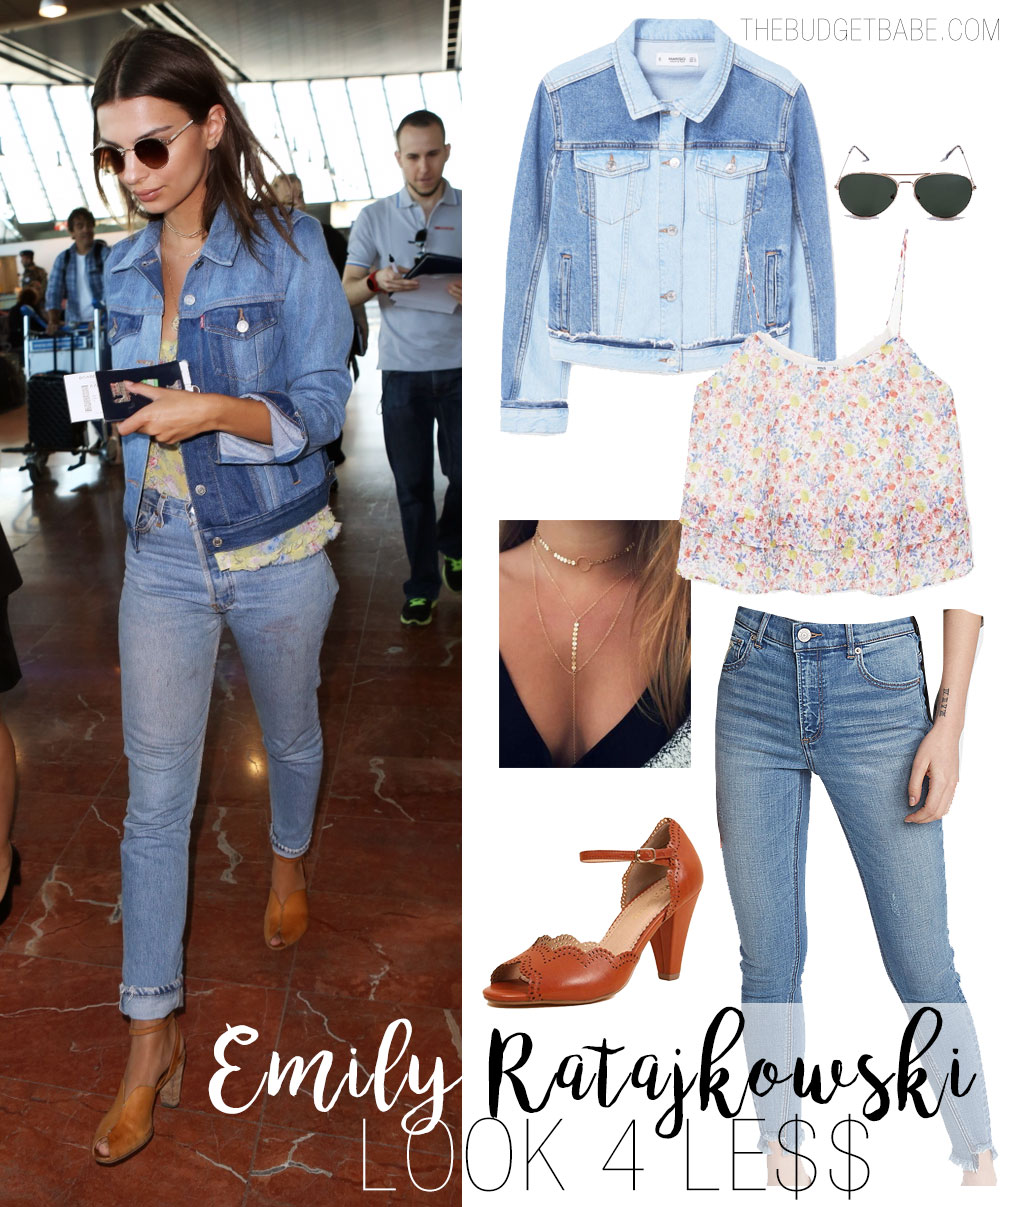 Emily Ratajkowski wears a Levi's denim jacket while jet-setting from Nice, France.